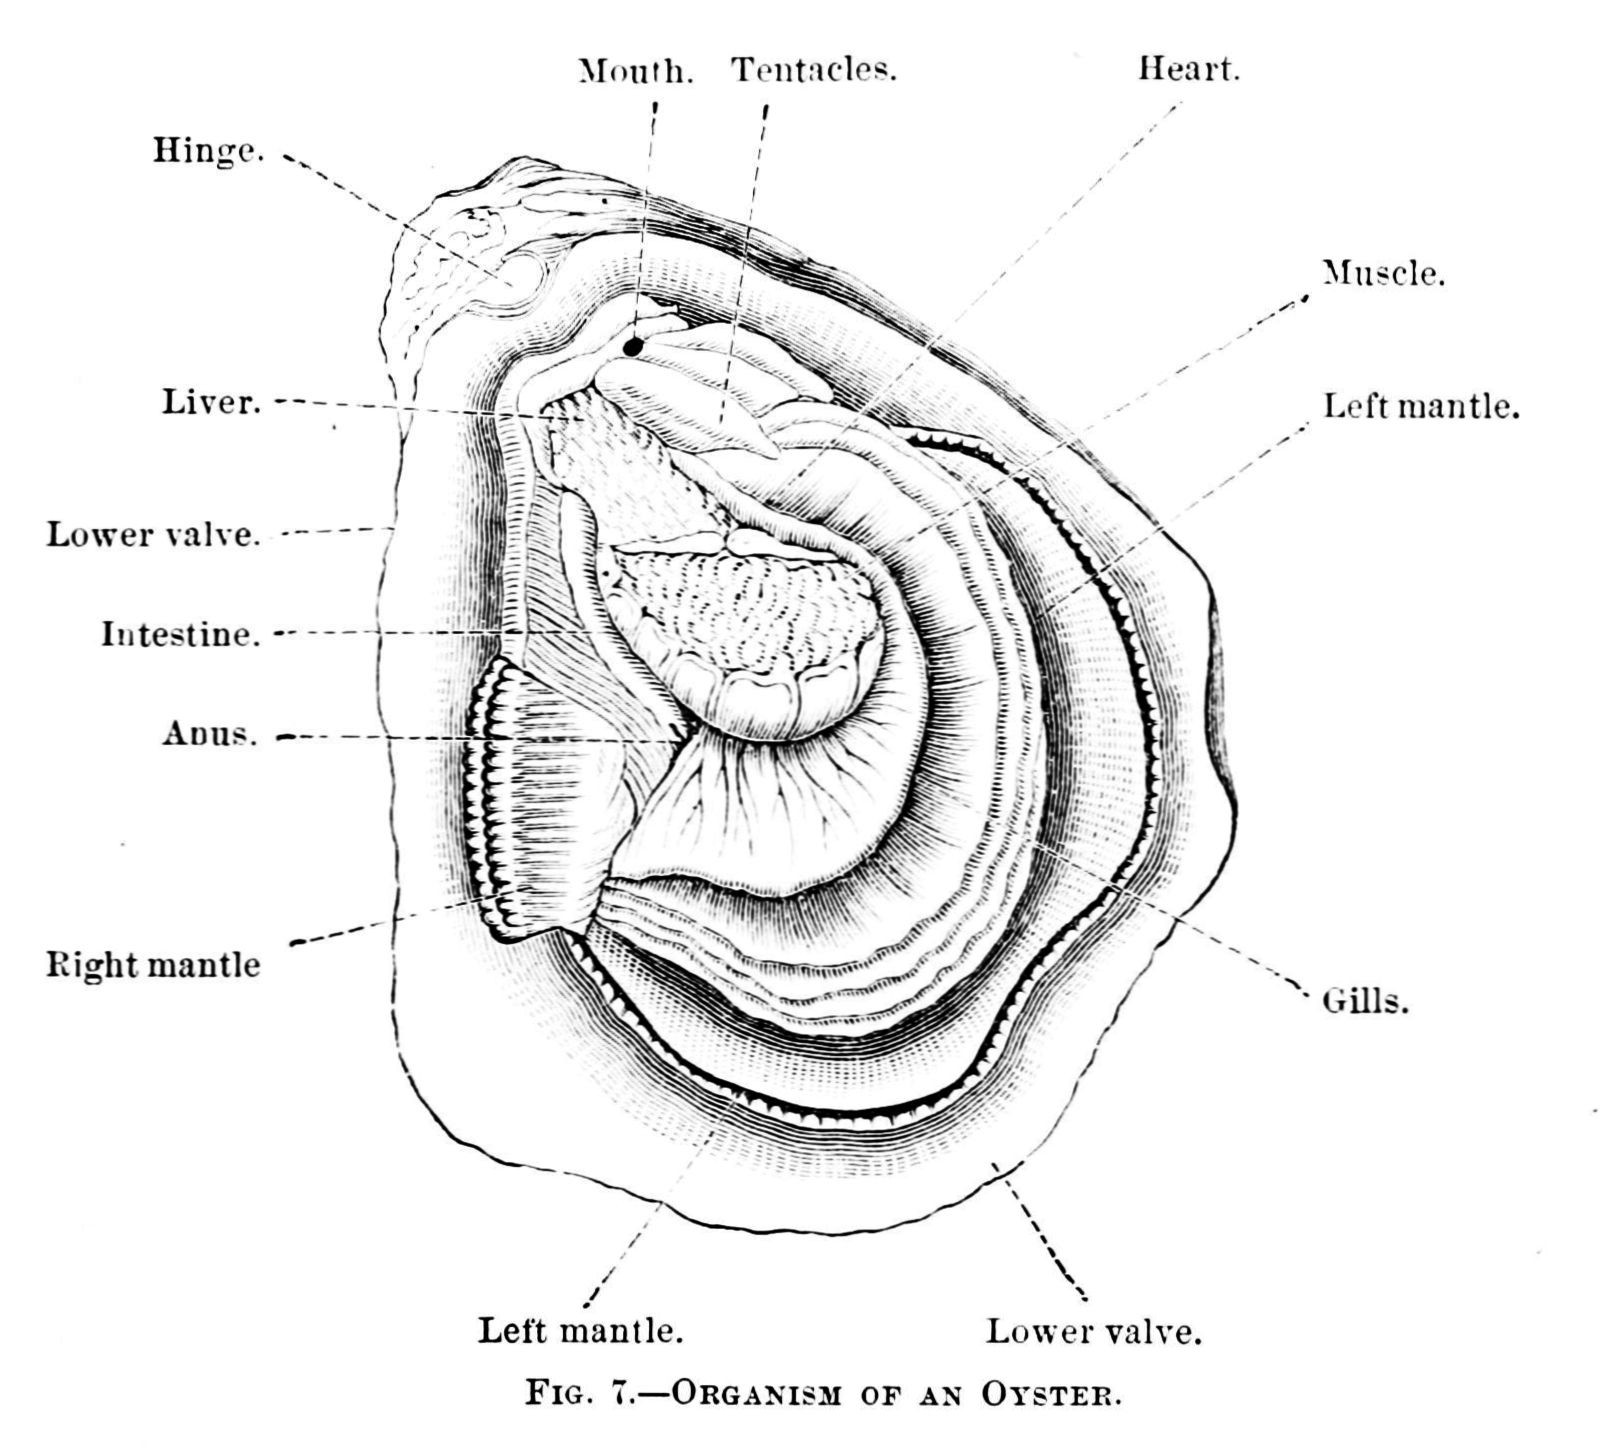 Organism Of An Oyster Diagram